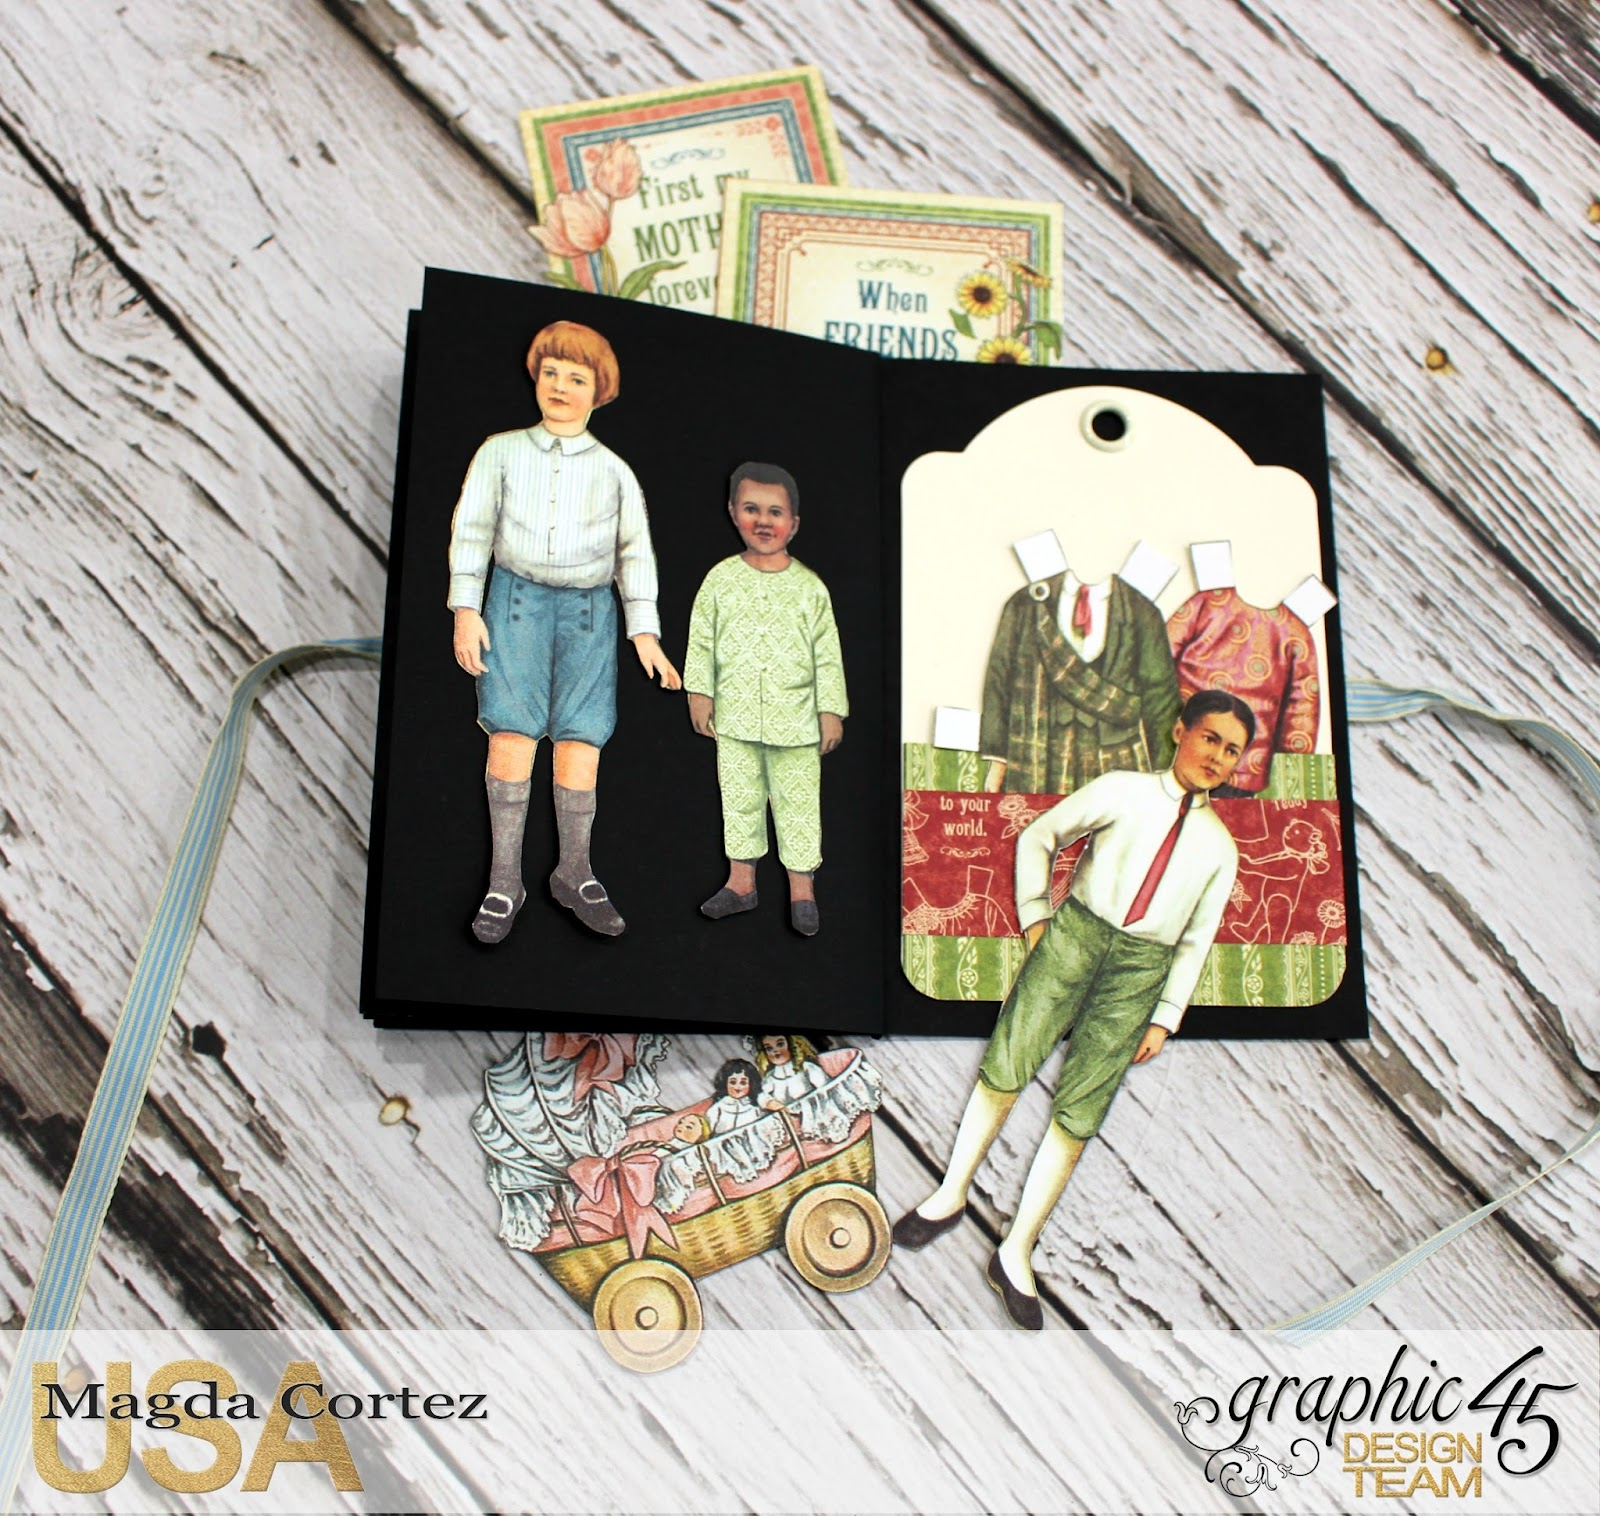 Penny's Color My World - Penny's Family Paper Doll By Magda Cortez, Product of Graphic 45, Photo 09 of 11 with Tutorial.jpg